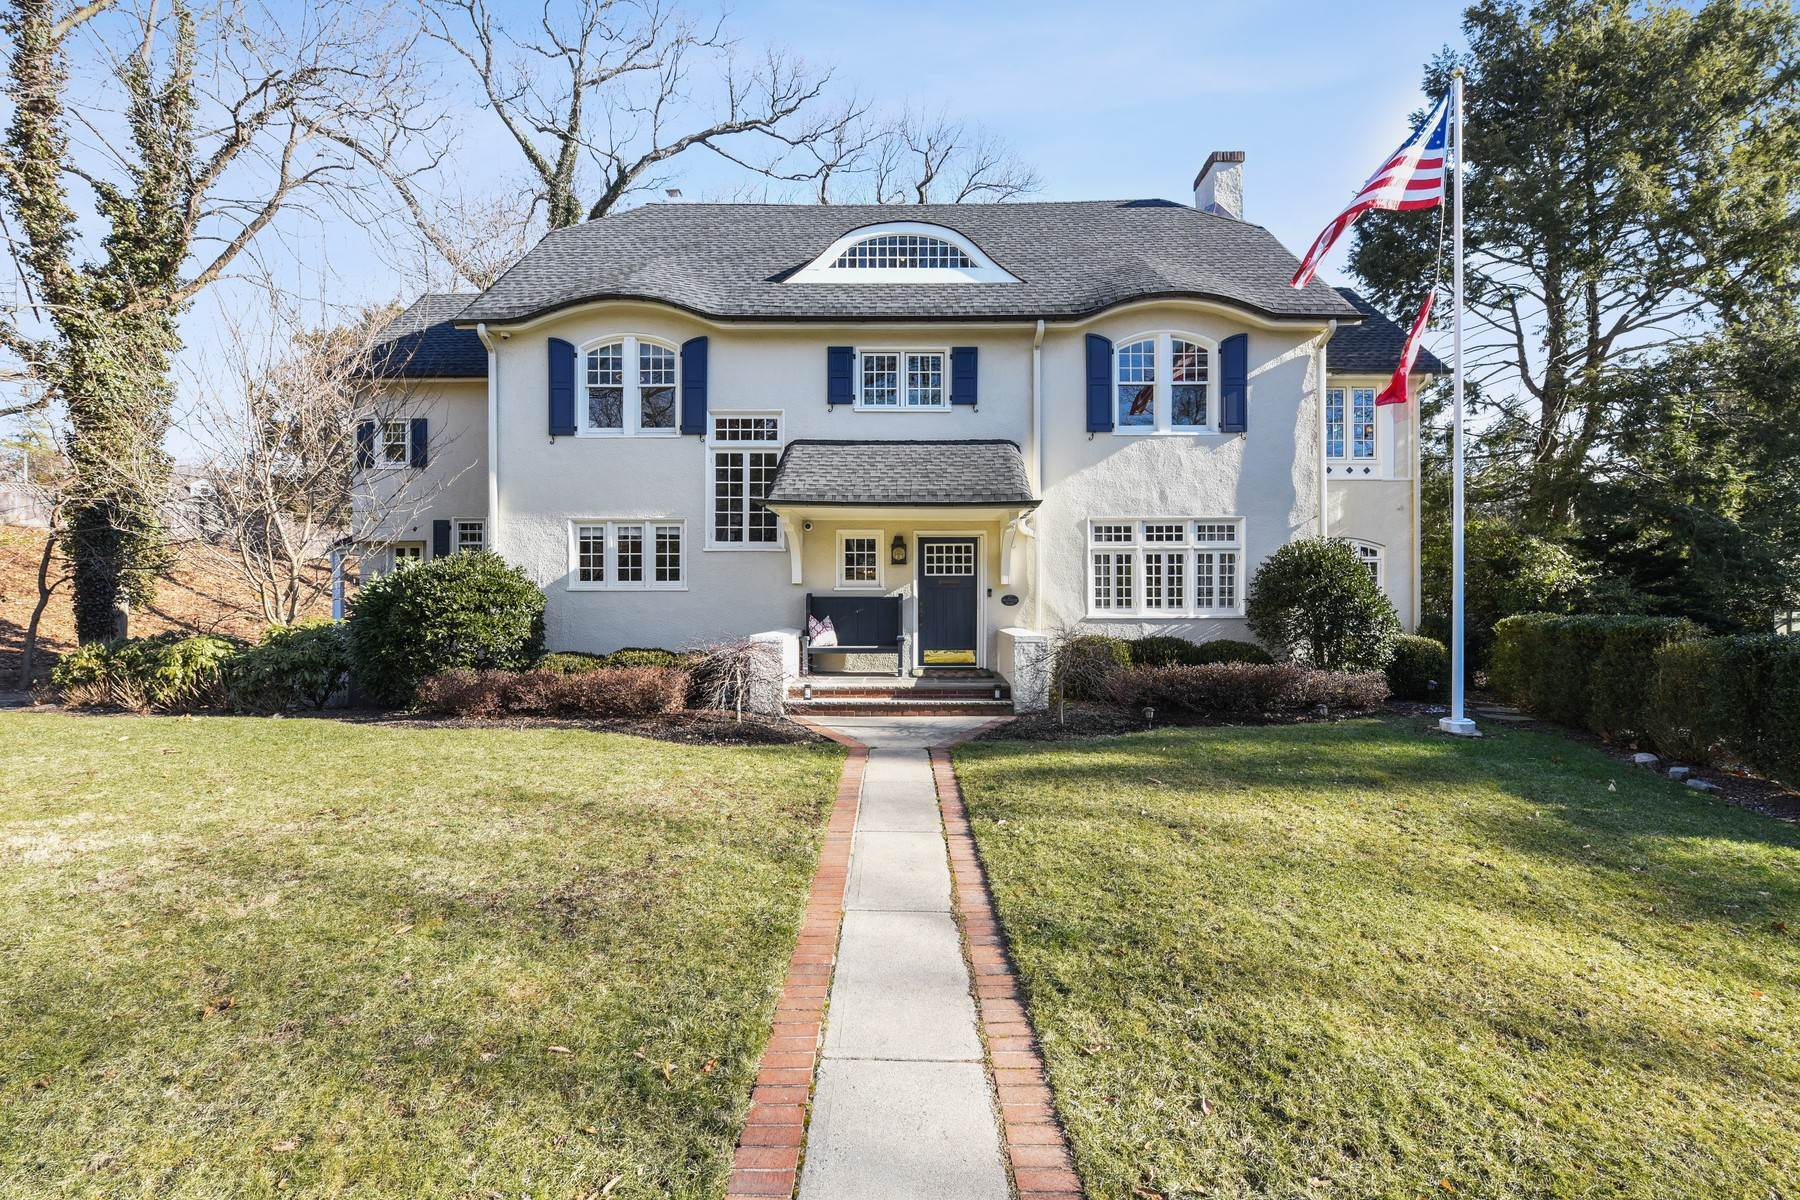 Single Family Homes for Sale at Classic Northside Colonial 23 Fernwood Road Summit, New Jersey 07901 United States